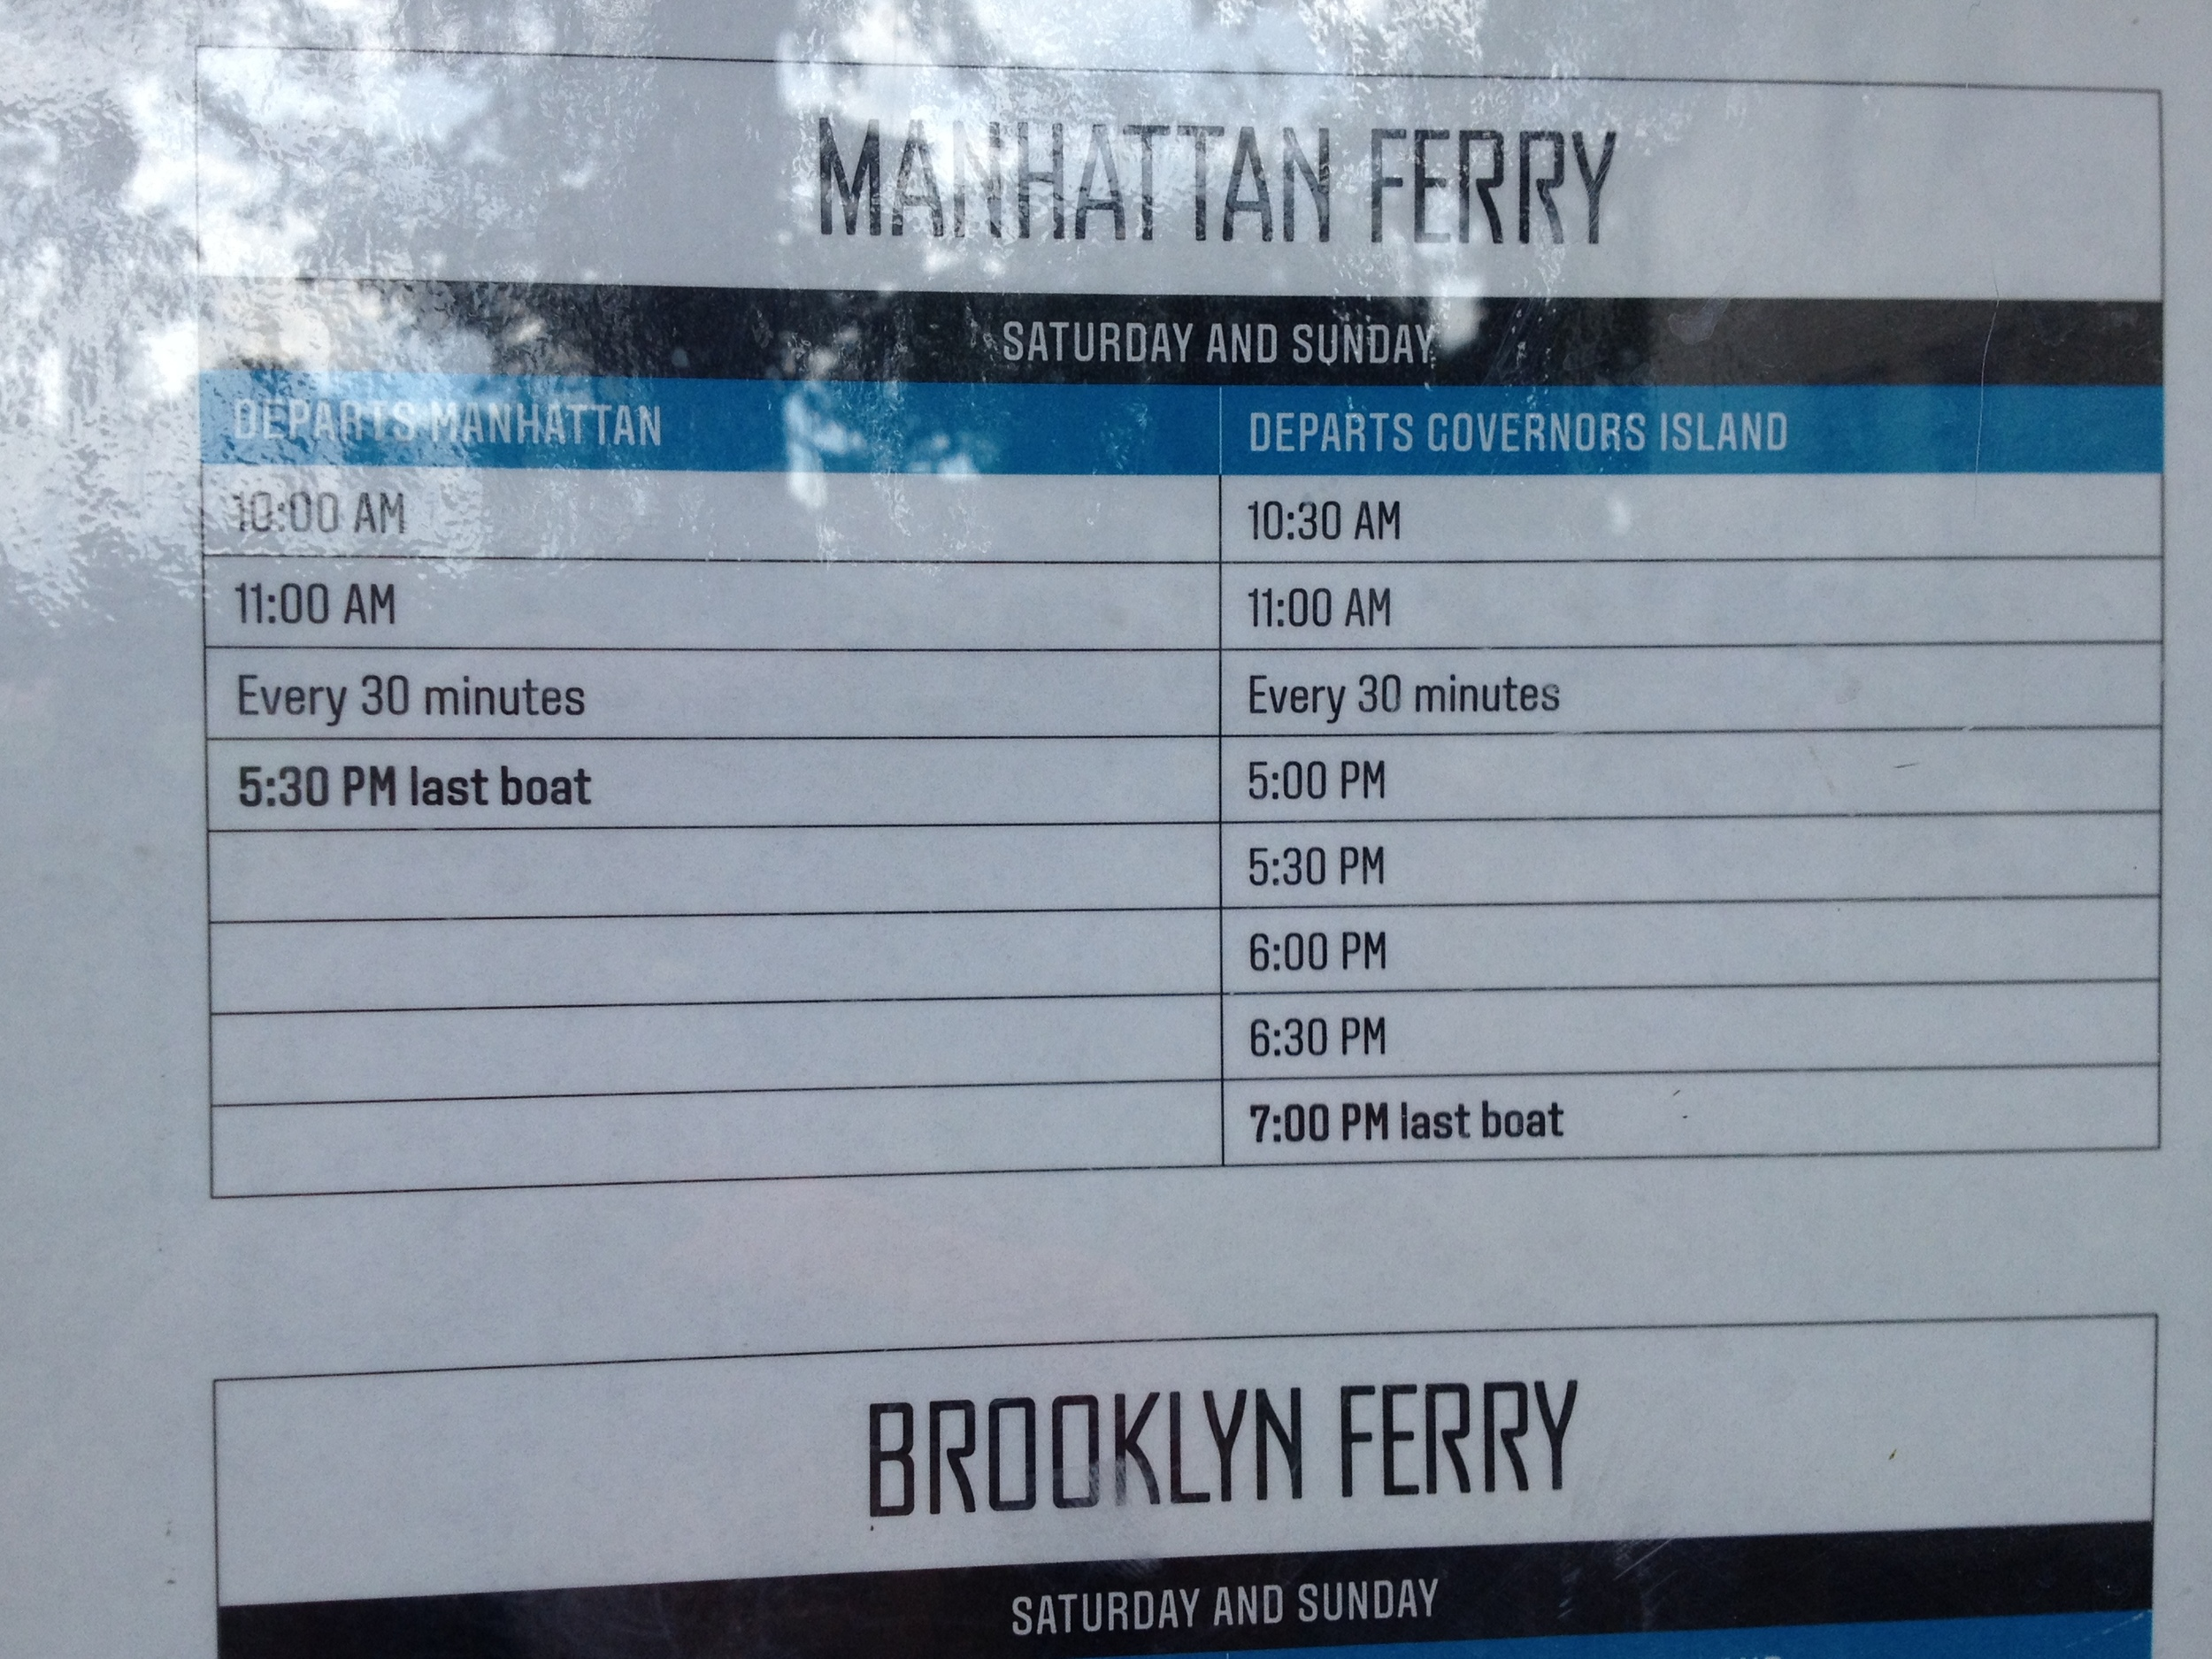 Free ferry schedule between Southend of Manhattan and Governors Island, New York.